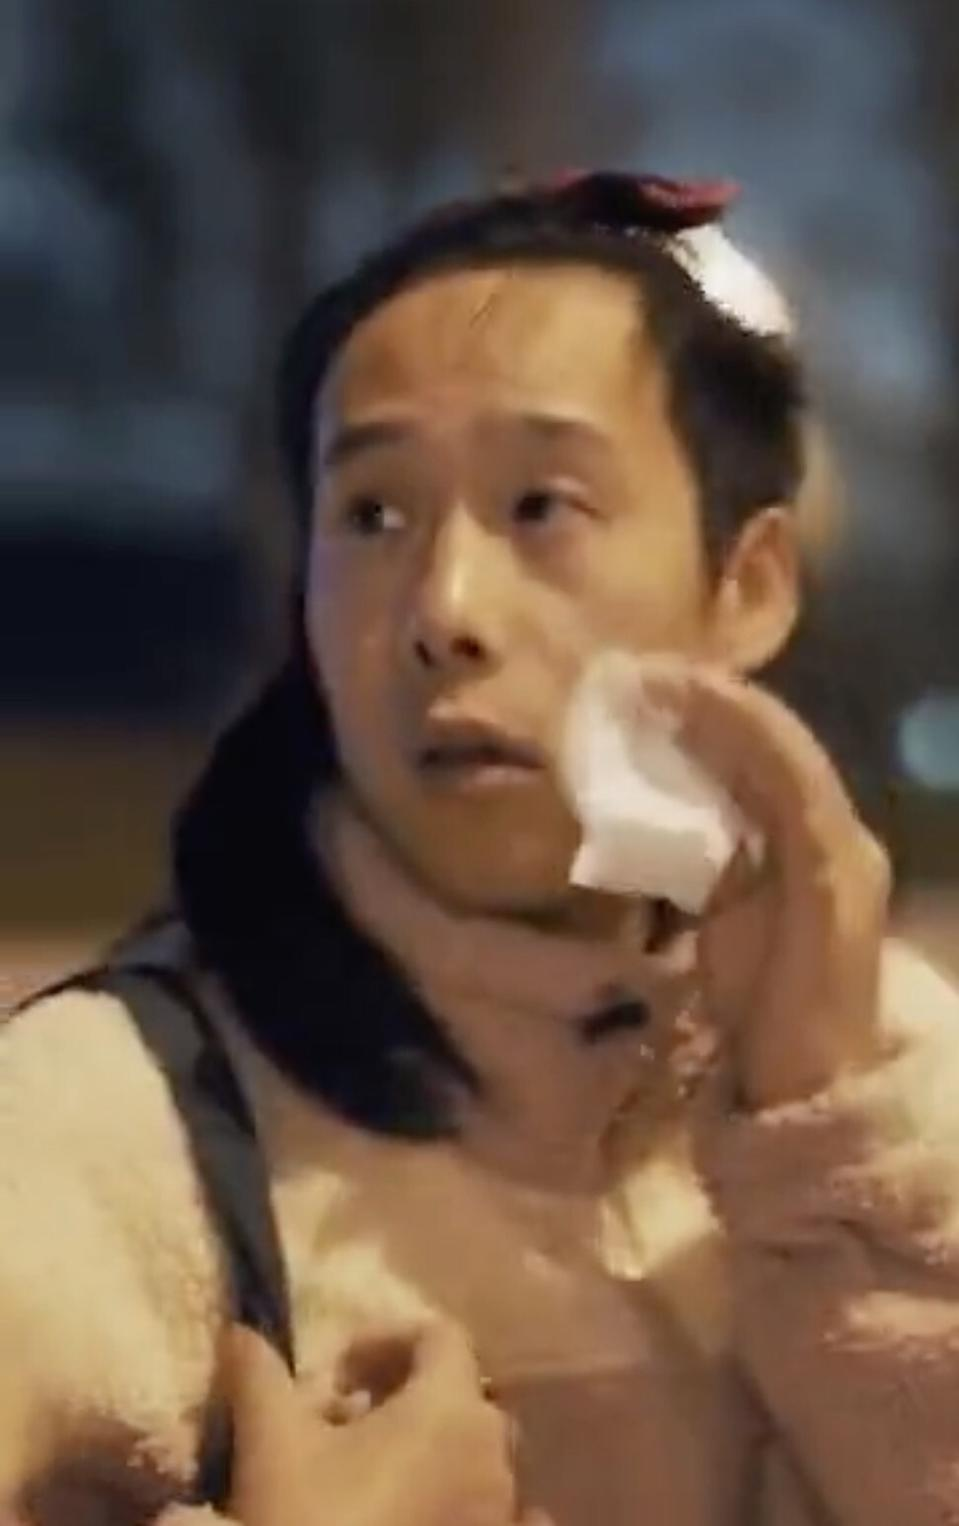 A still from the video shows the woman having removed her make-up. The premise of the Purcotton ad was strongly attacked online in China.